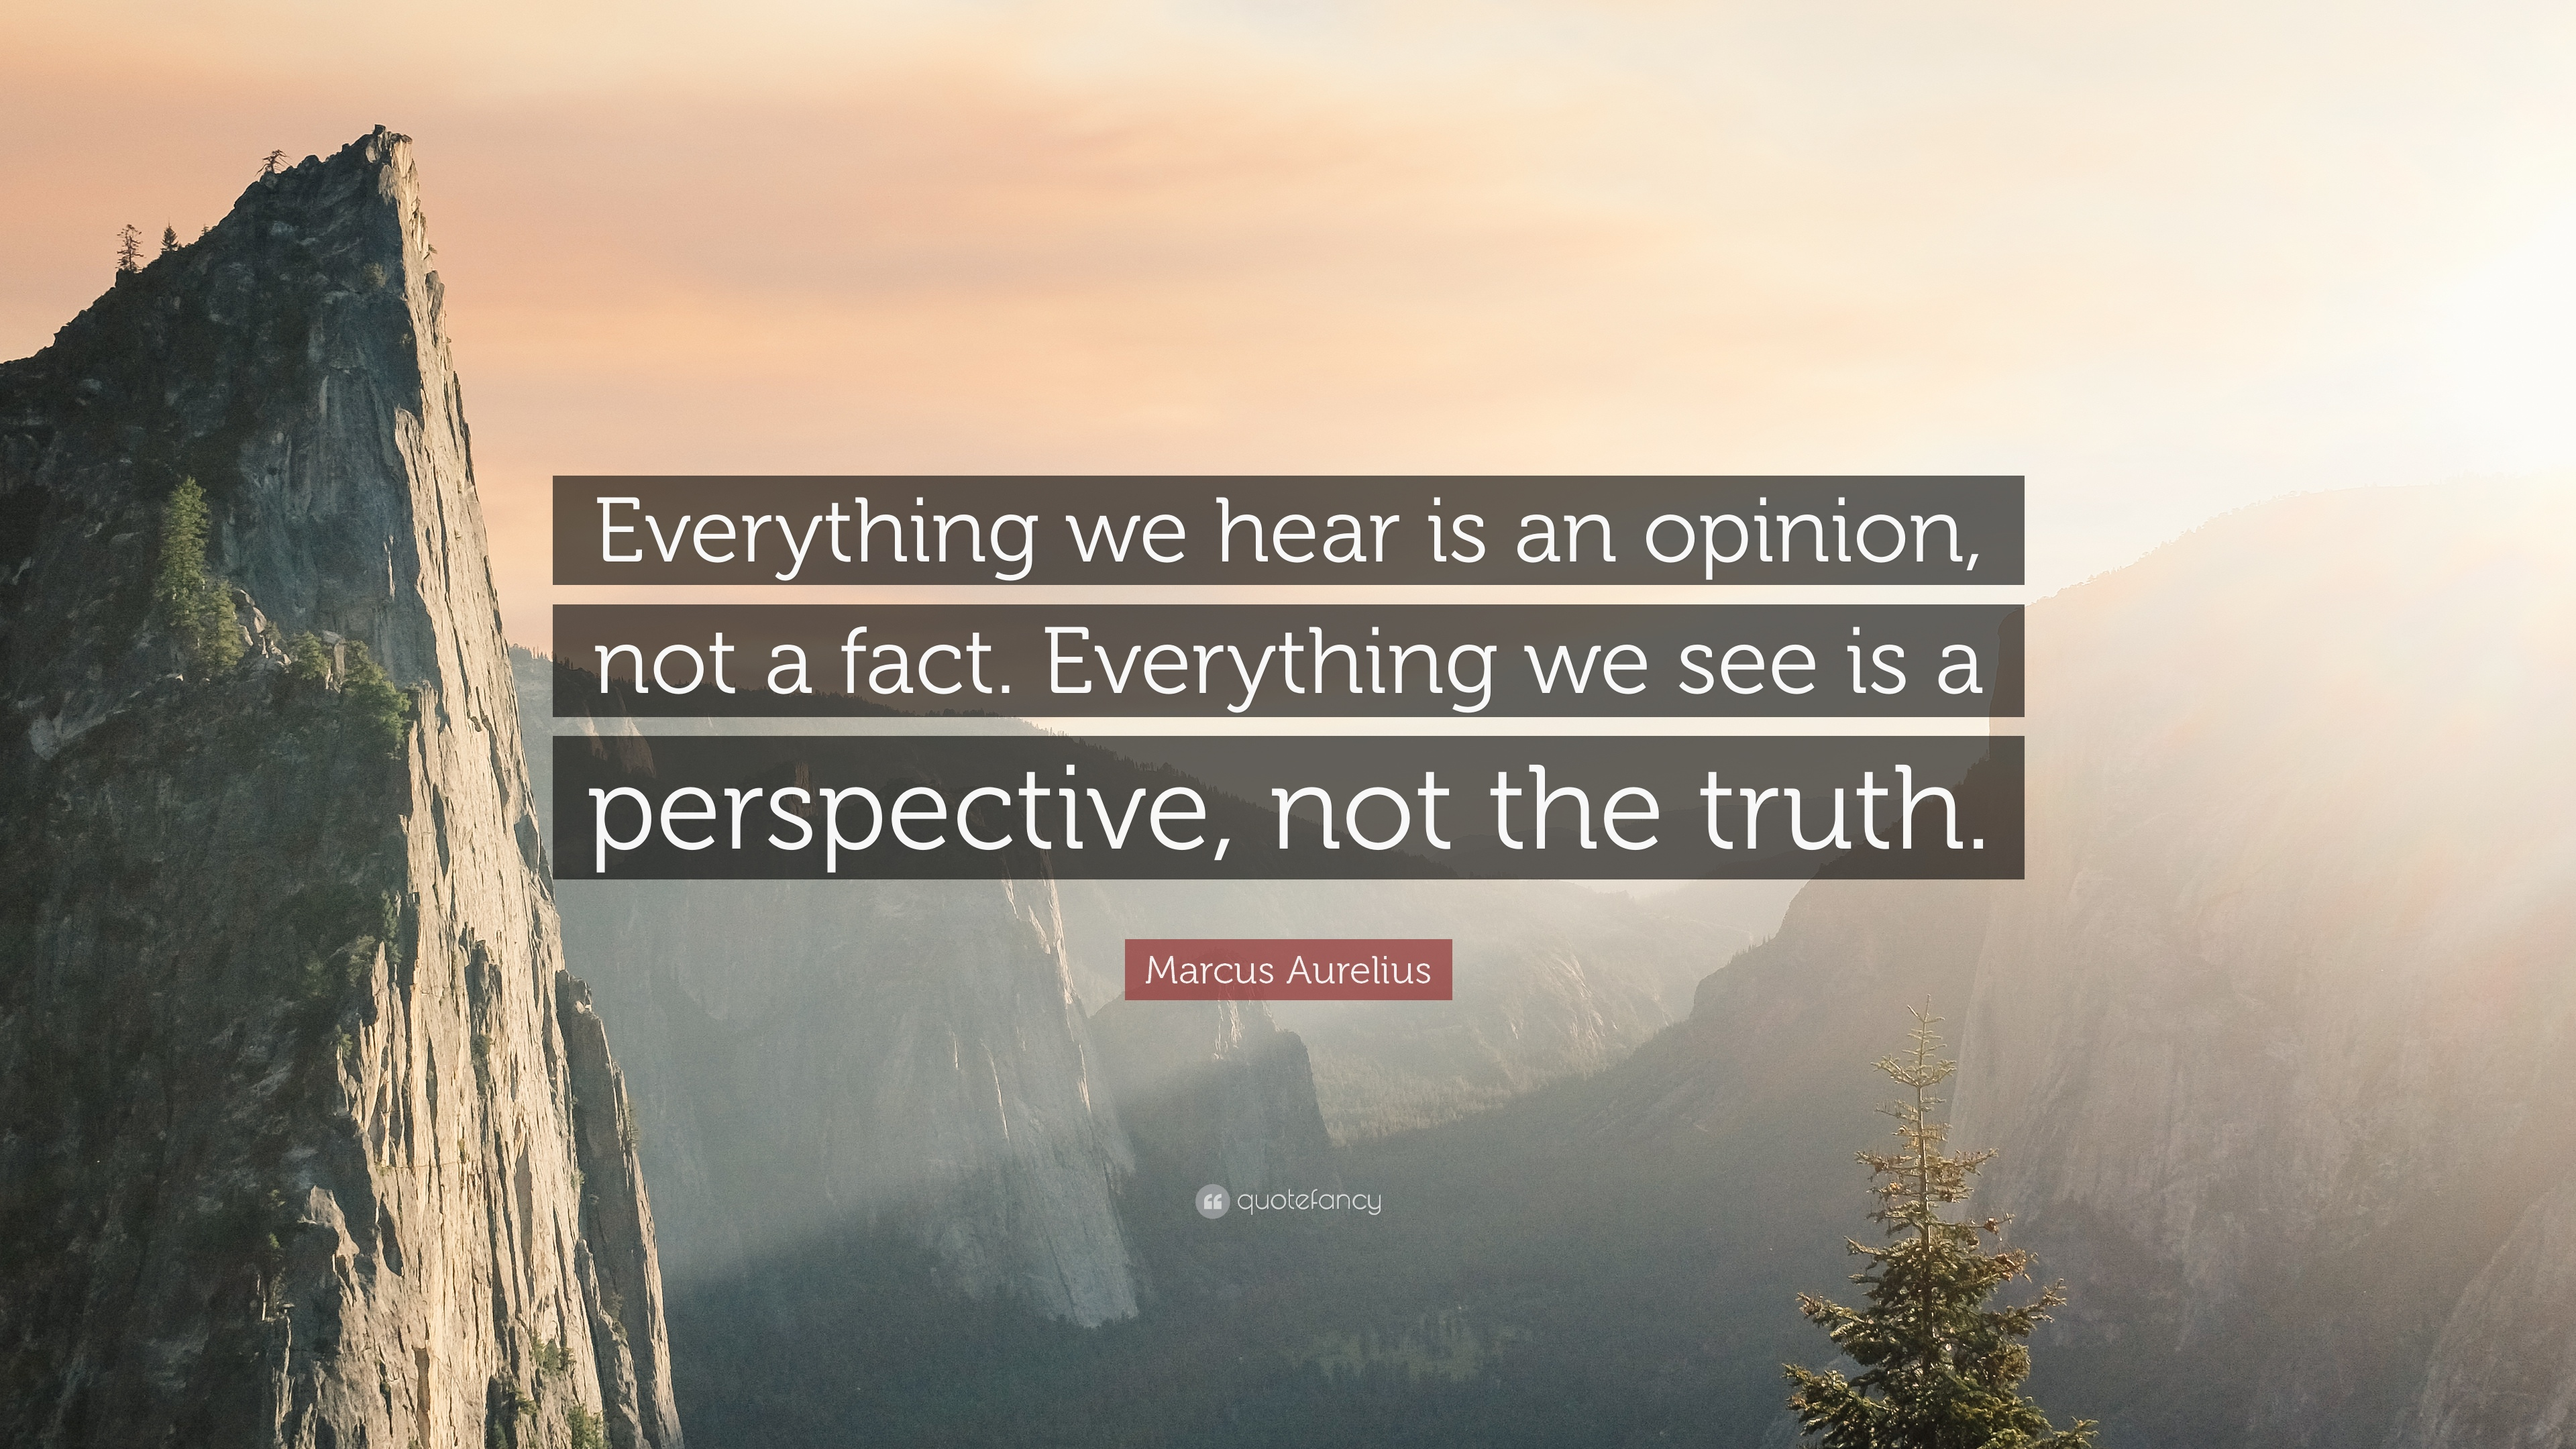 Dalai Lama Wallpaper Quotes Marcus Aurelius Quote Everything We Hear Is An Opinion